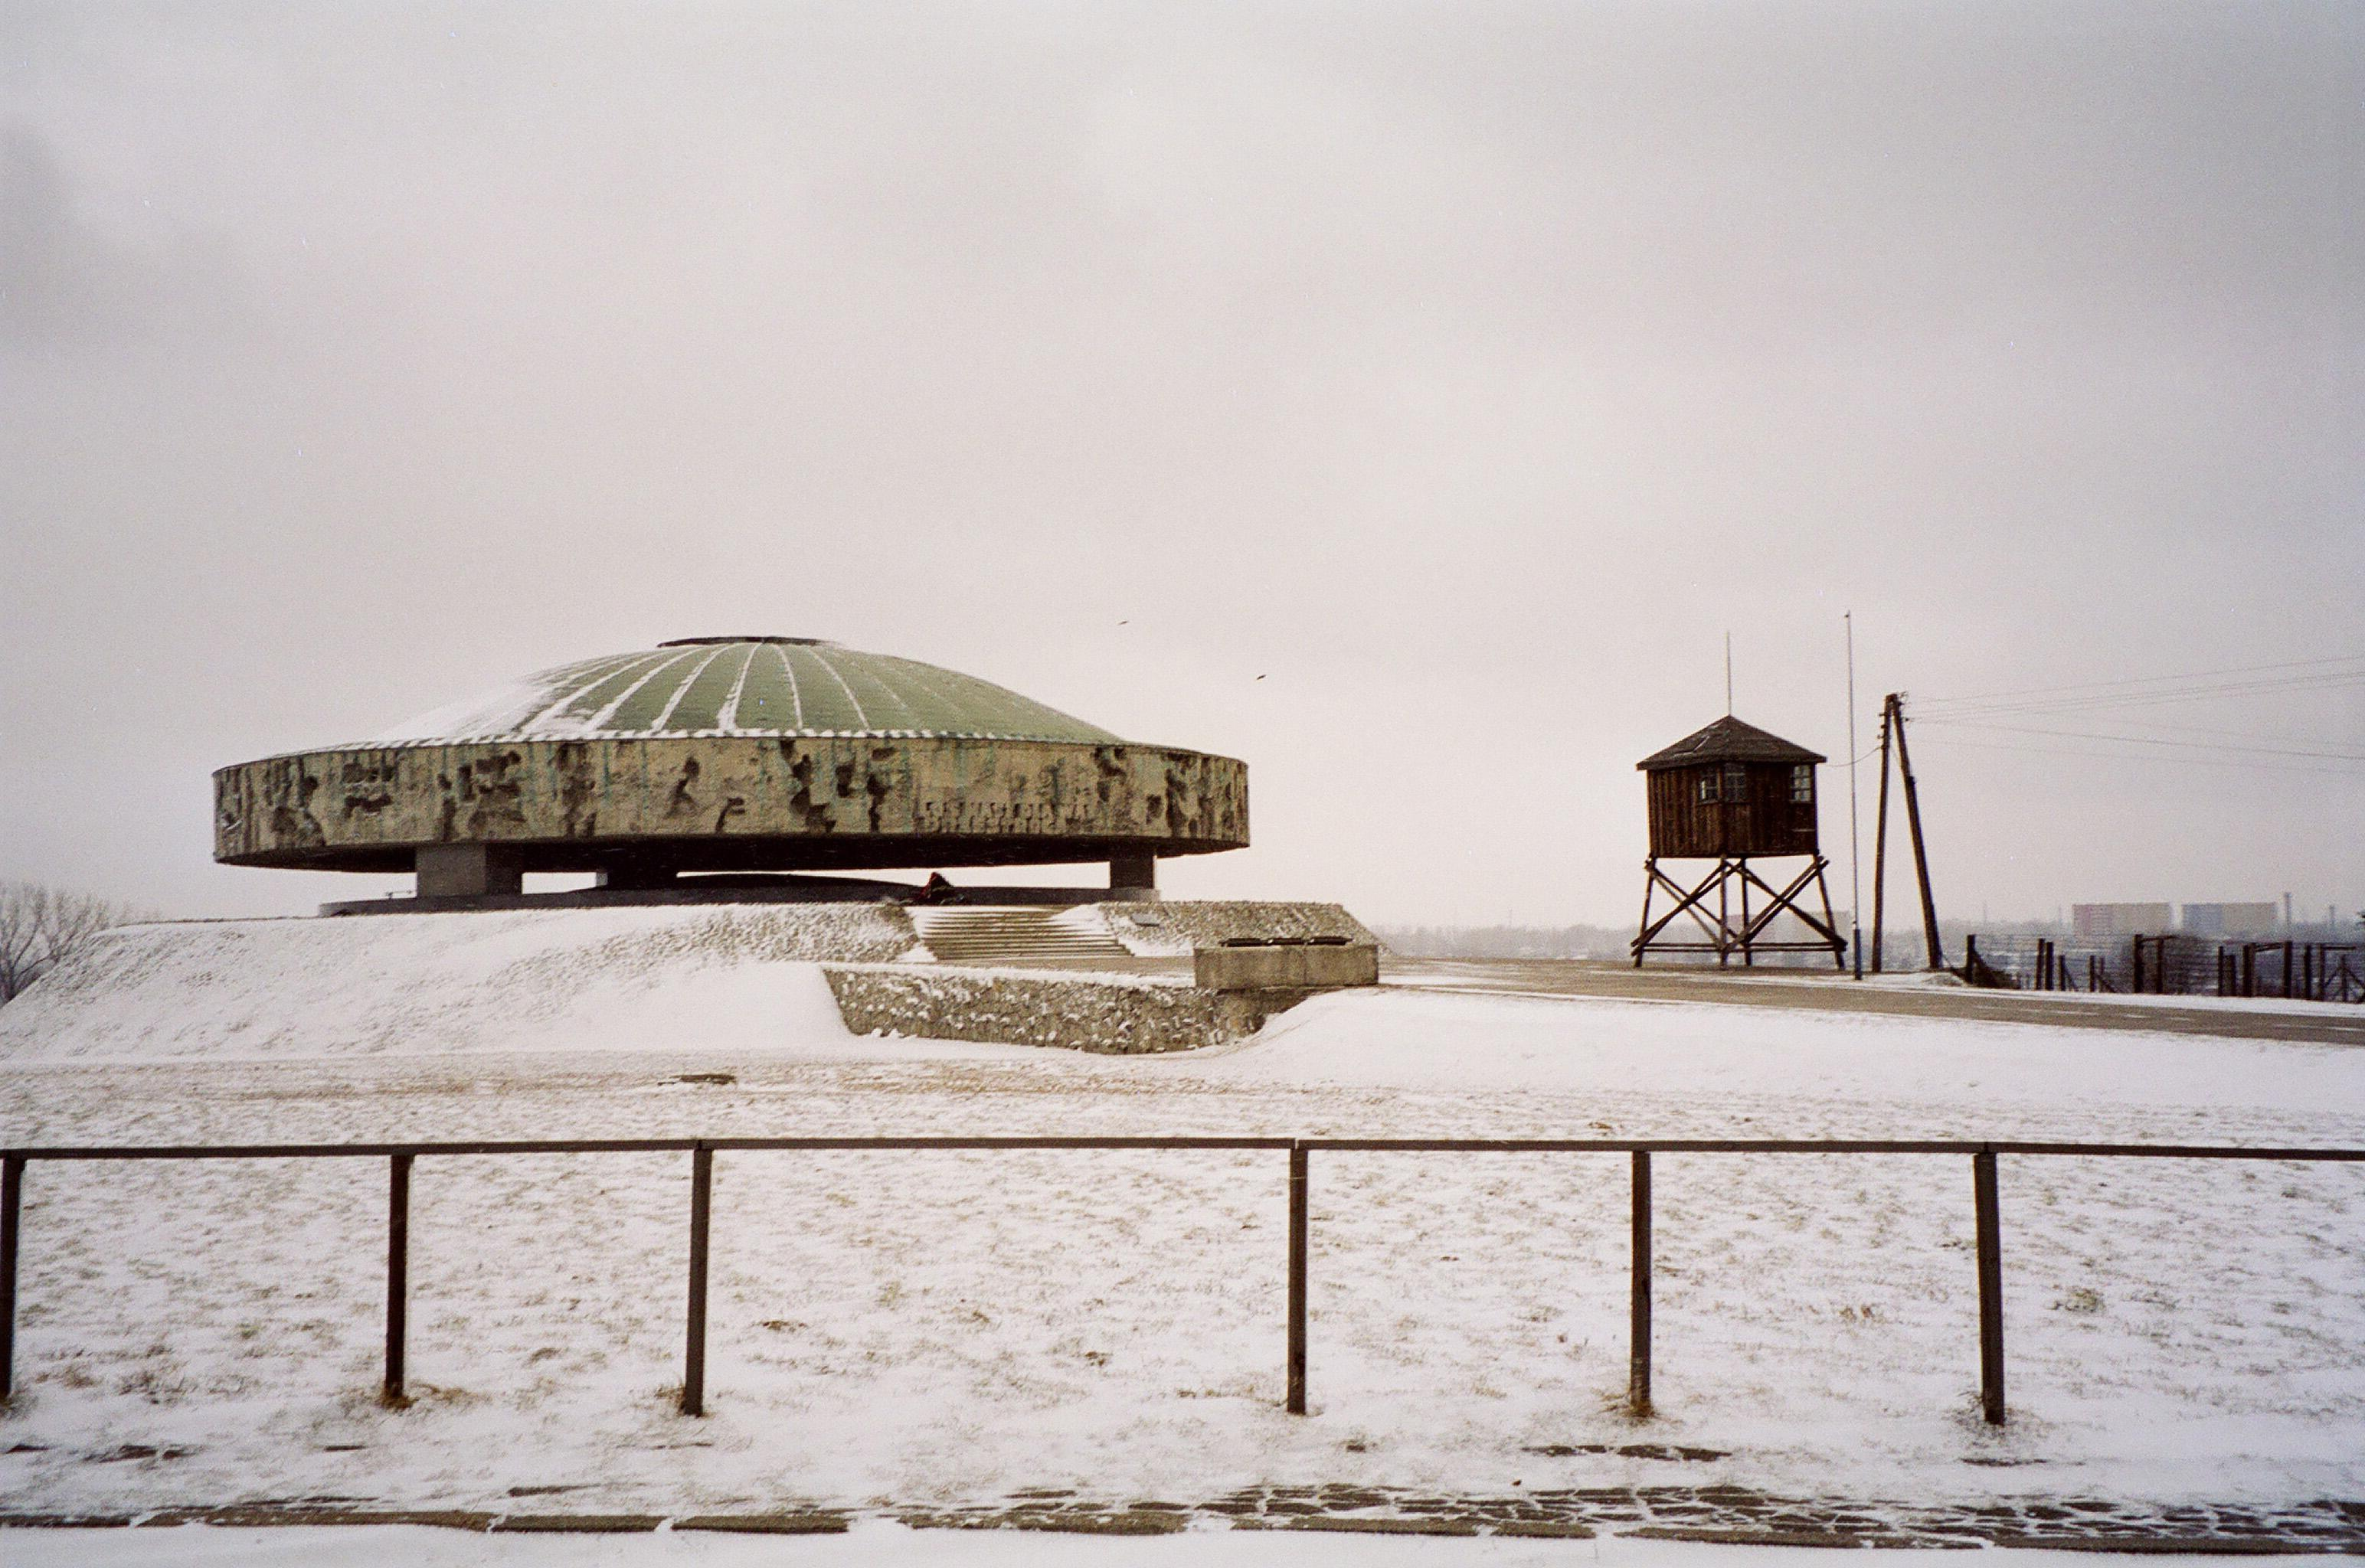 The dome hosts ashes from some of the burnt bodies of the prisoners - Majdanek, Poland